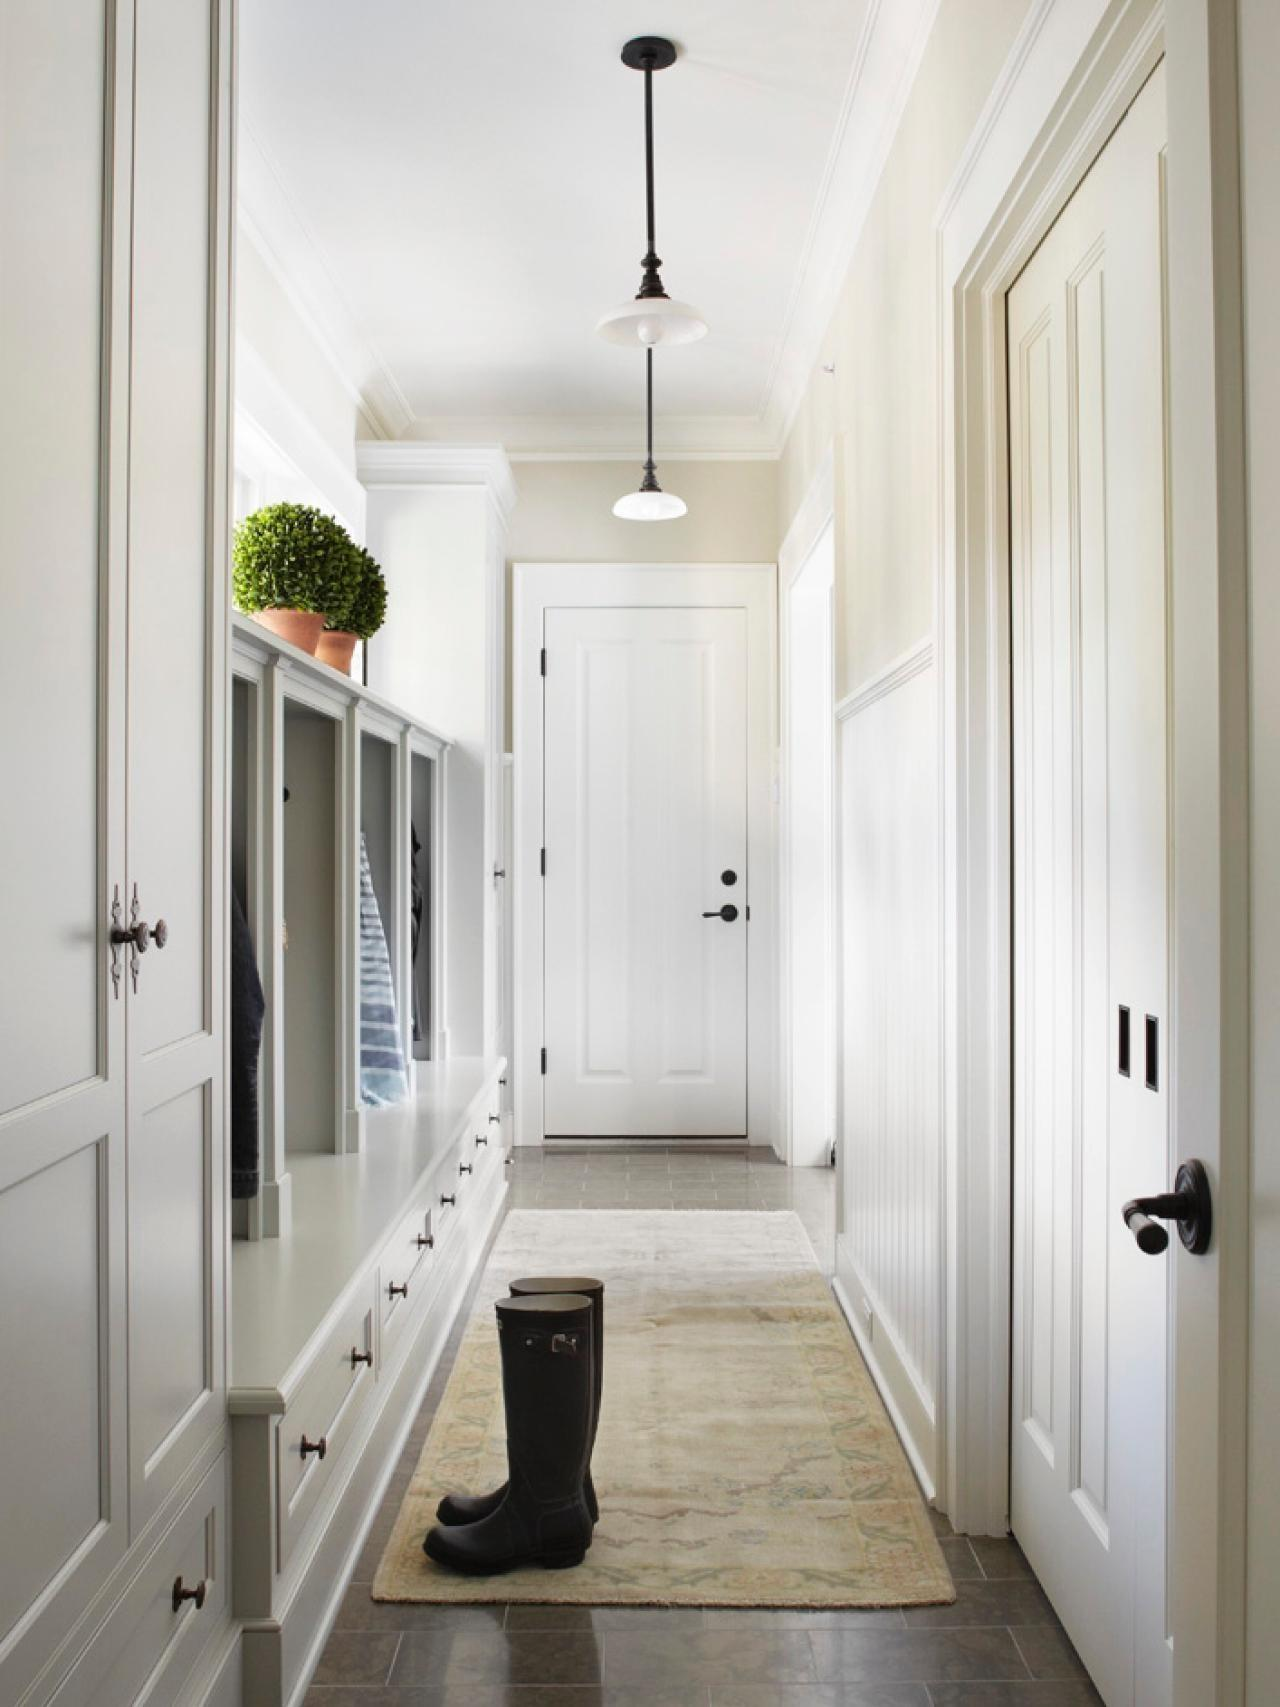 Finding Place Your Mudroom